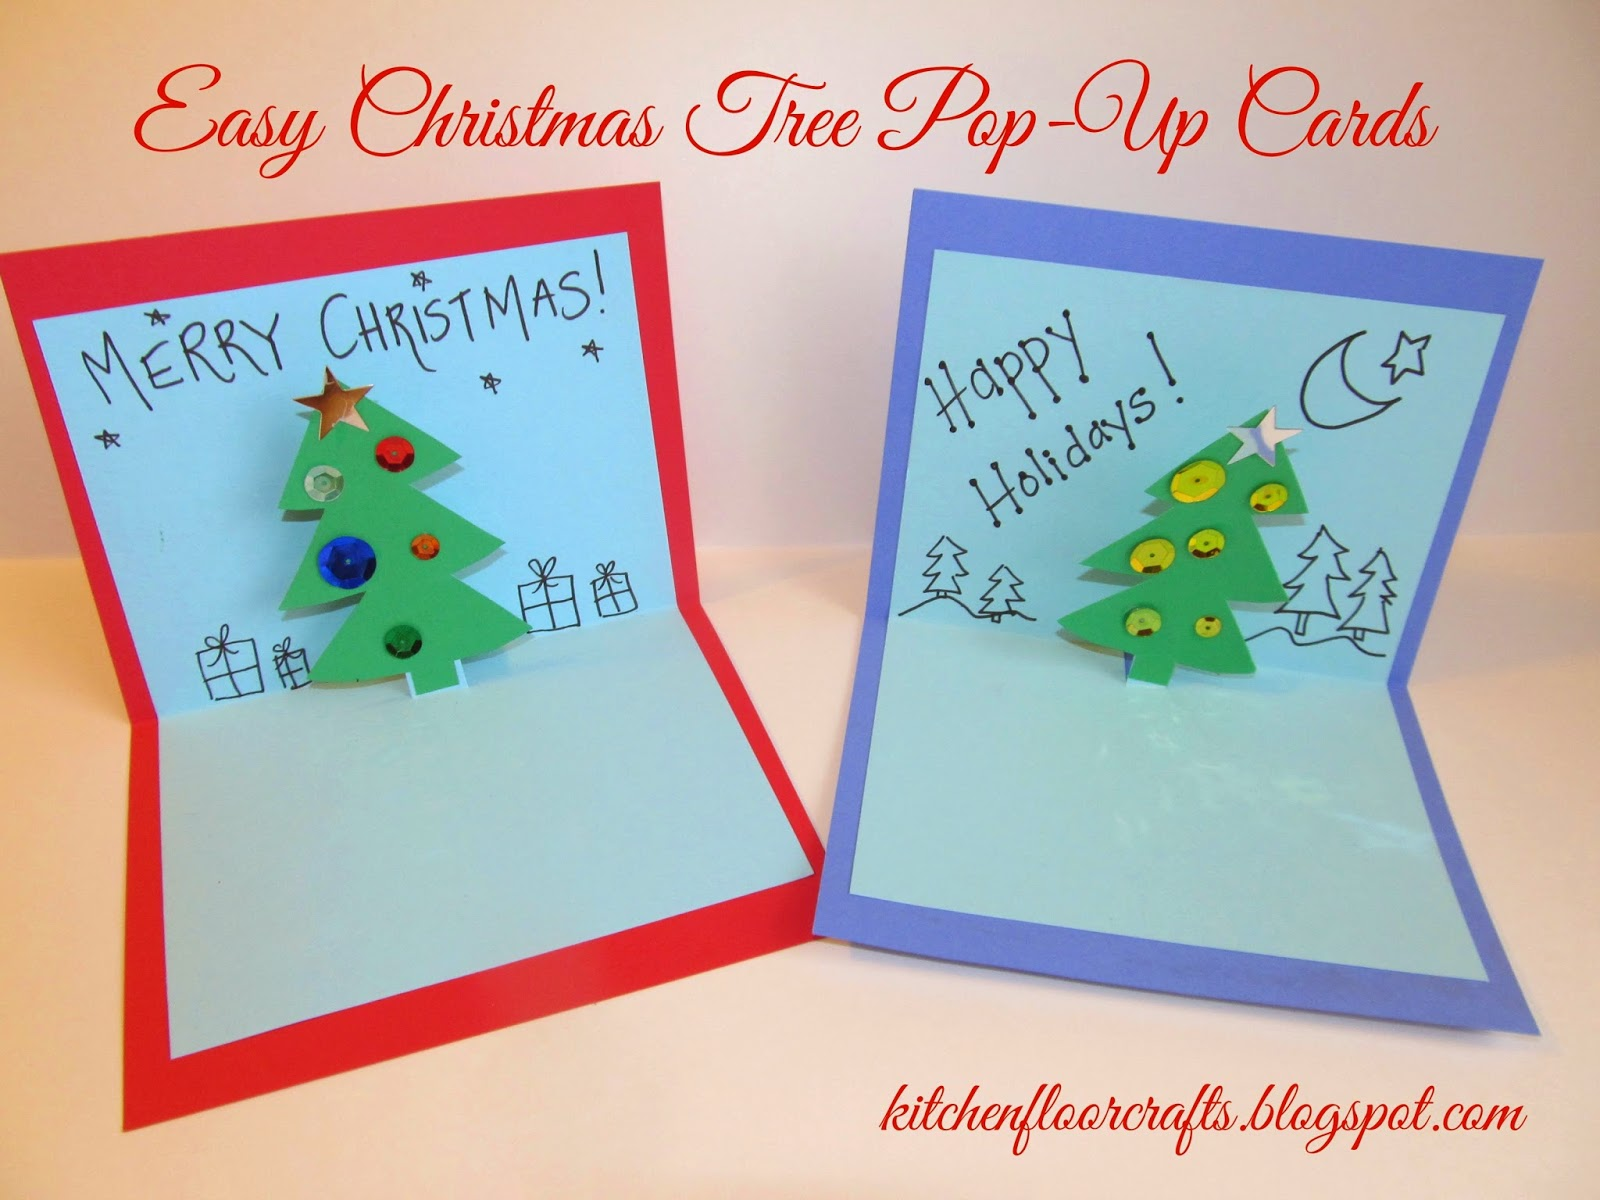 Kitchen Floor Crafts: Easy Christmas Tree Pop-Up Cards